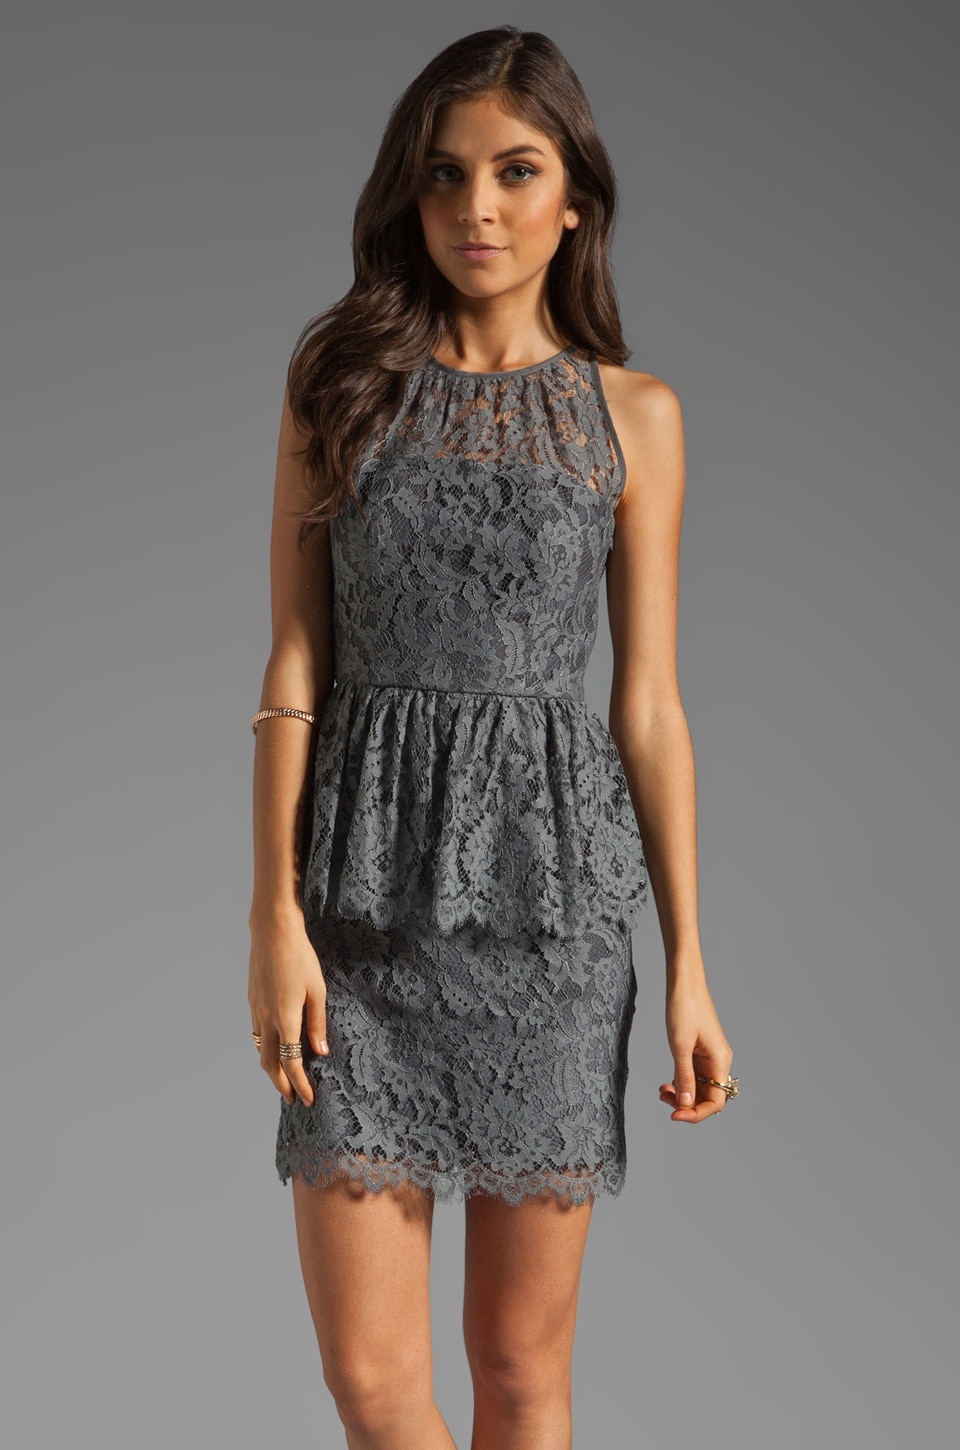 MILLY Floral Scallop Lace Liza Peplum Dress in Grey